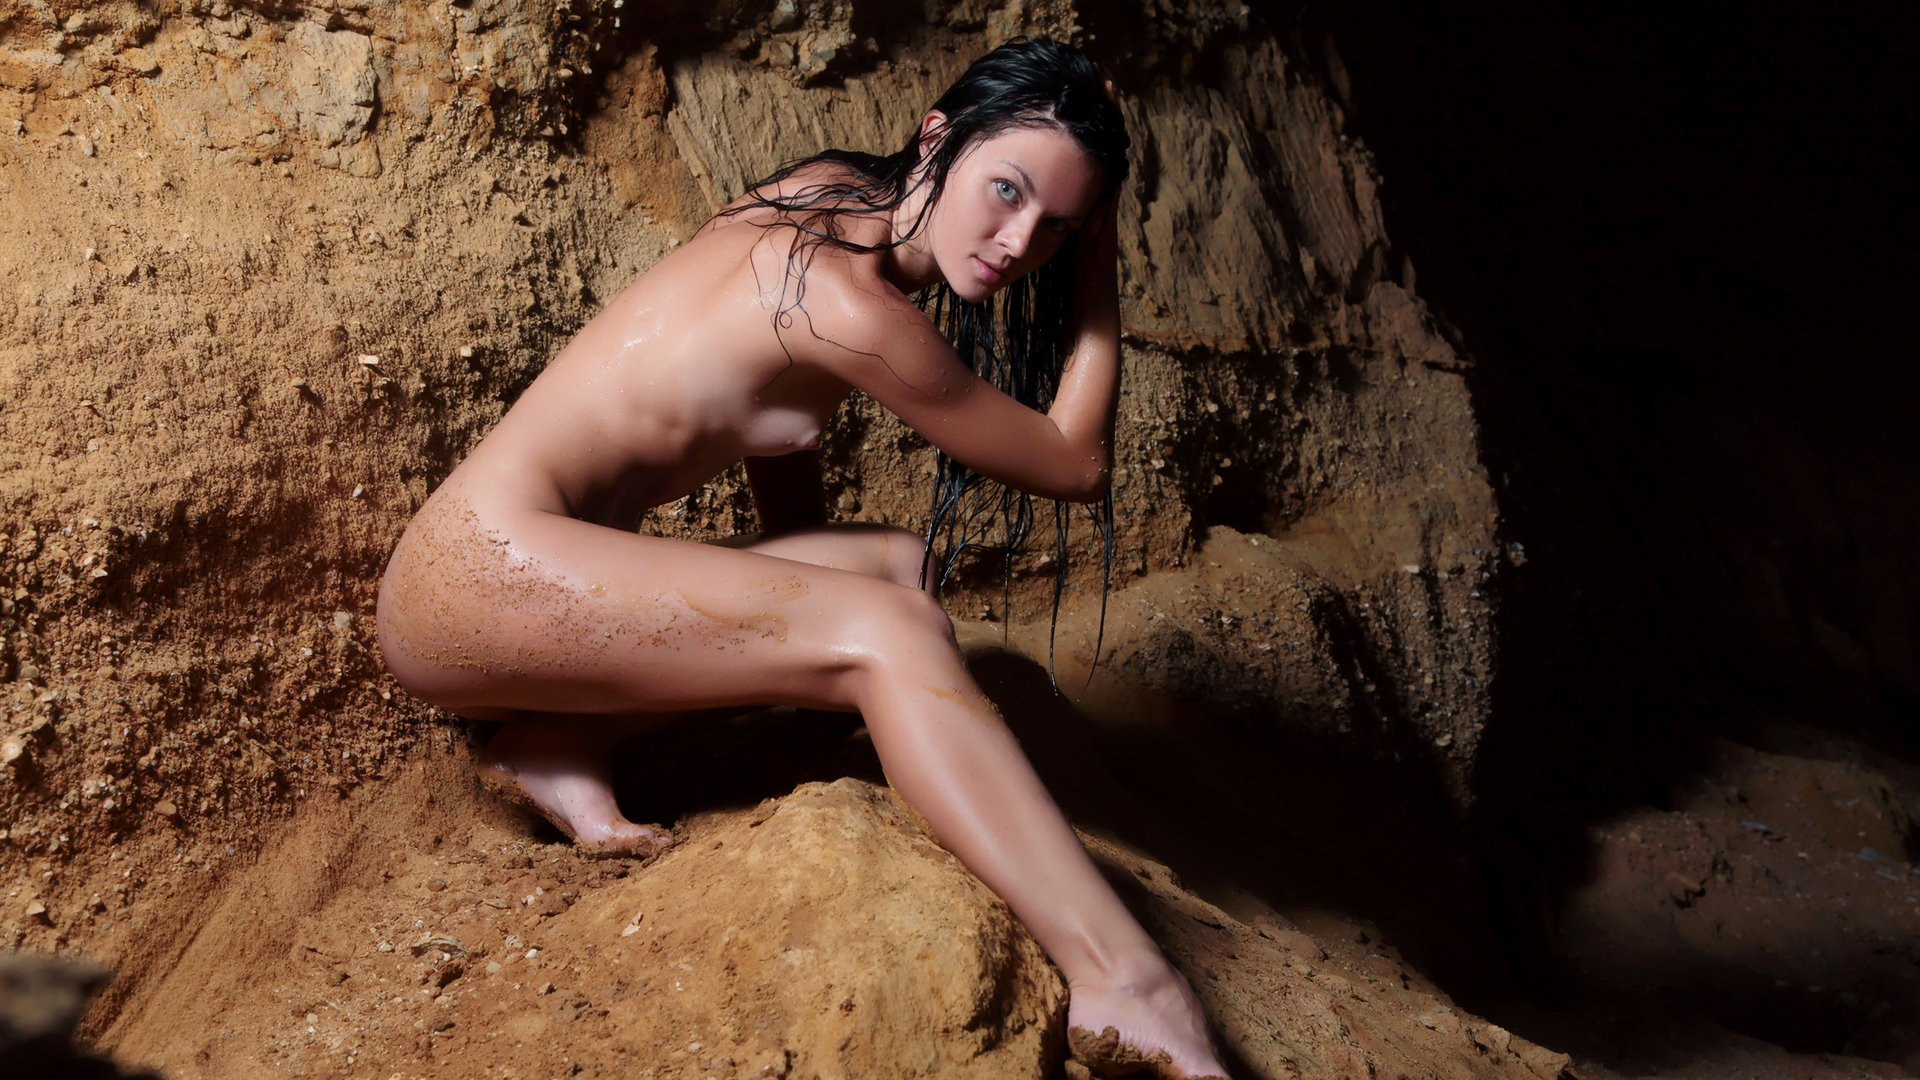 Very dirty naked girl wallpaper download porn scene